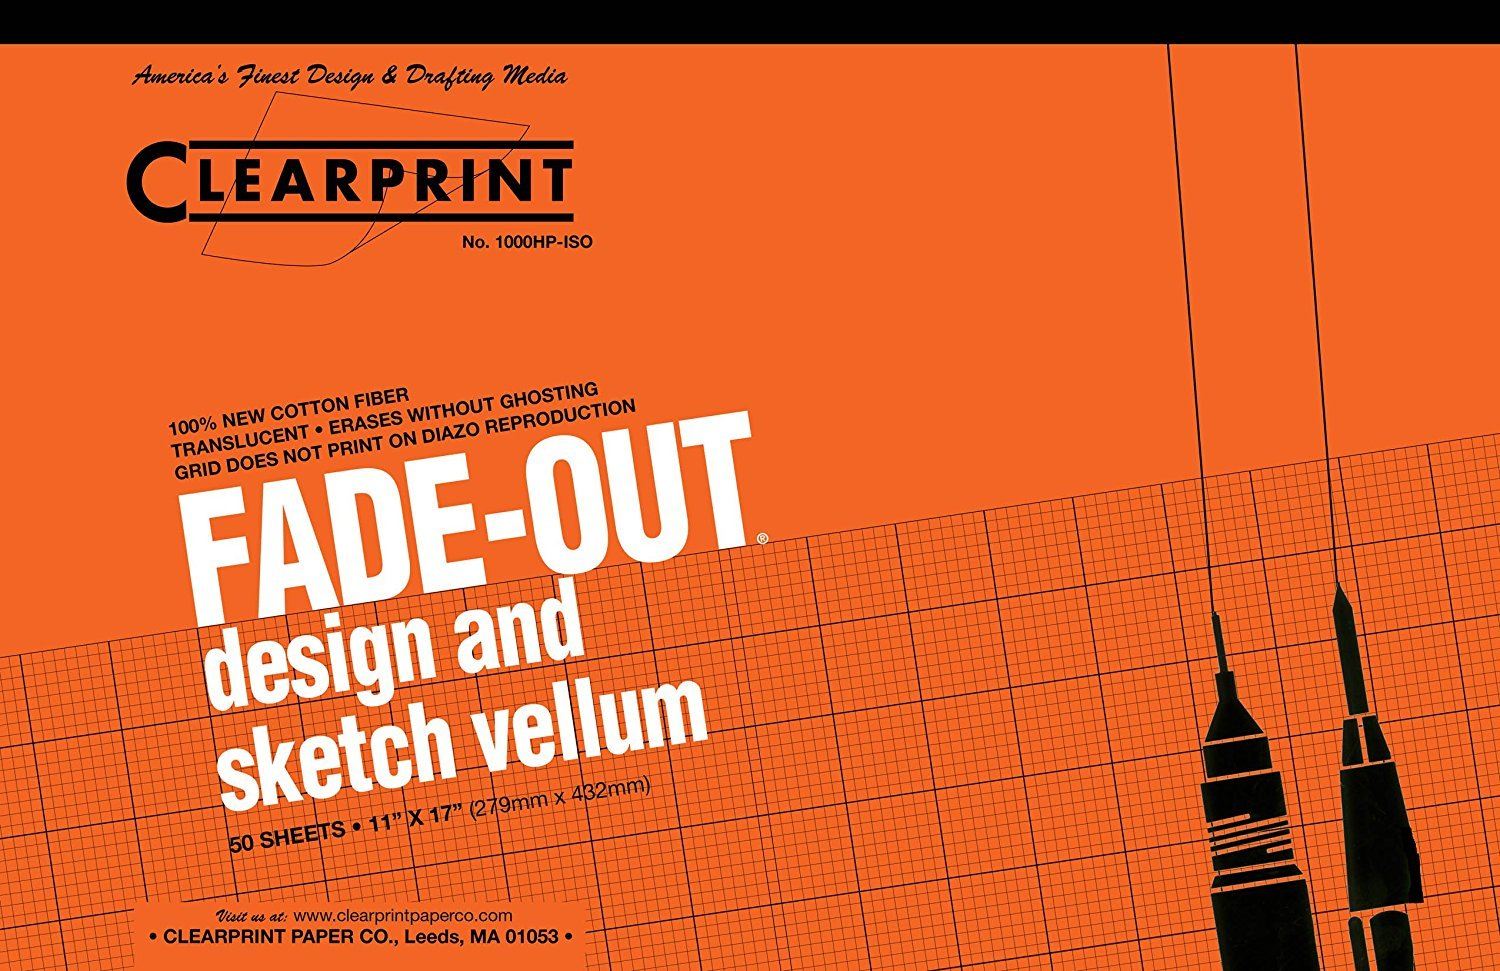 Clearprint Fade-Out Design and Sketch Vellum - Isometric 11 in. x 17 in. by Clearprint